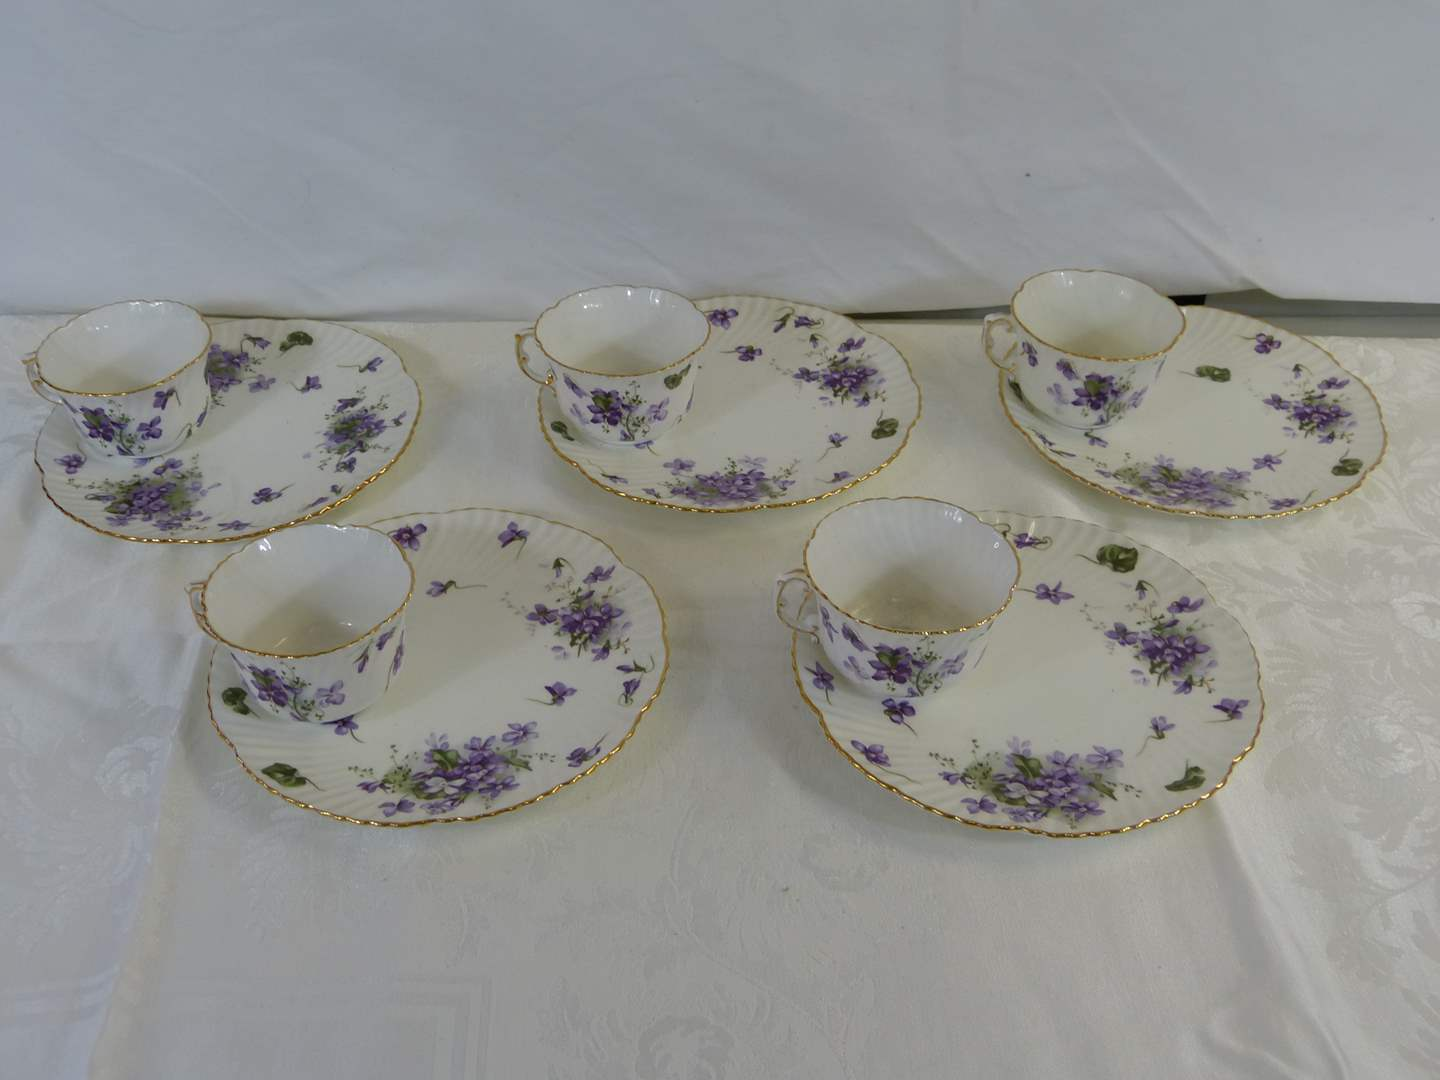 Lot # 21 AWESOME Hammersley Cup & under plate luncheon set Victorian Violets (5 RARE SETS) (main image)